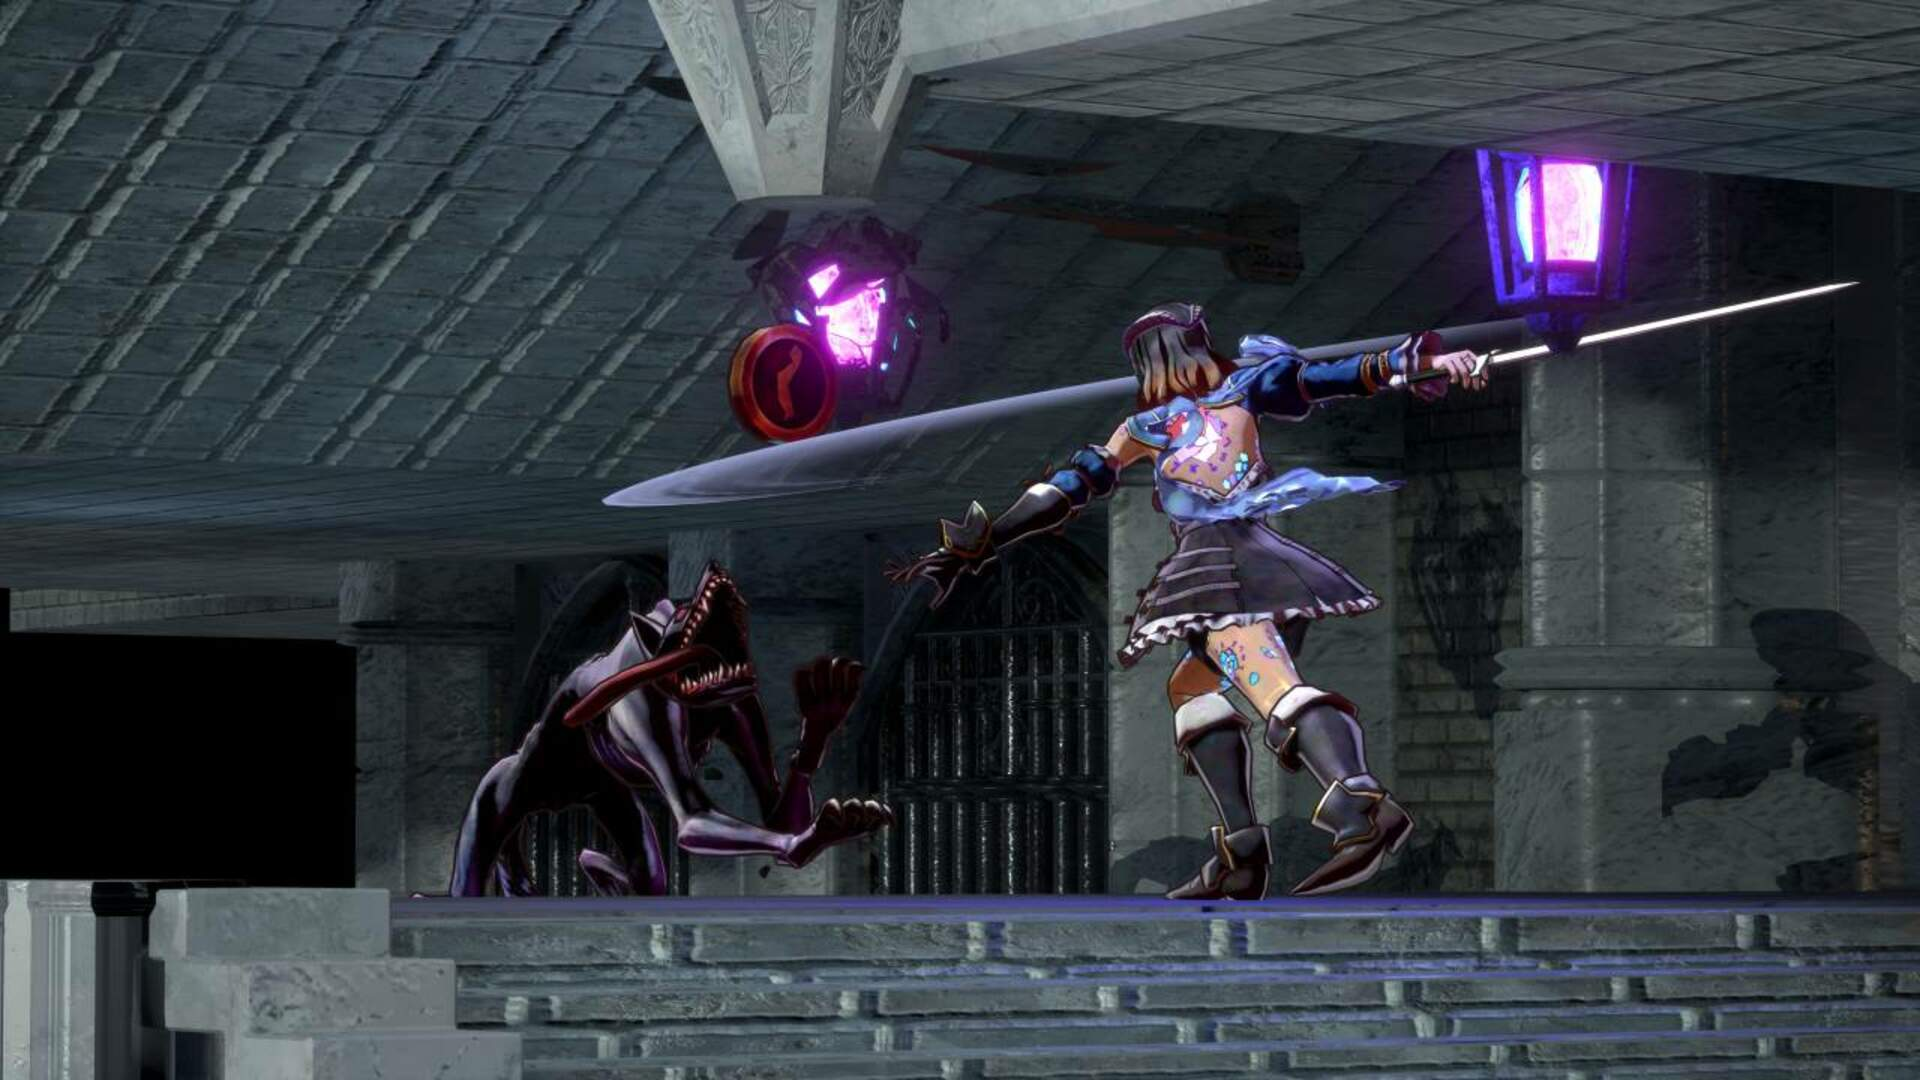 Bloodstained: Ritual of the Night Patch Has Completely Broken Progress For Some Players